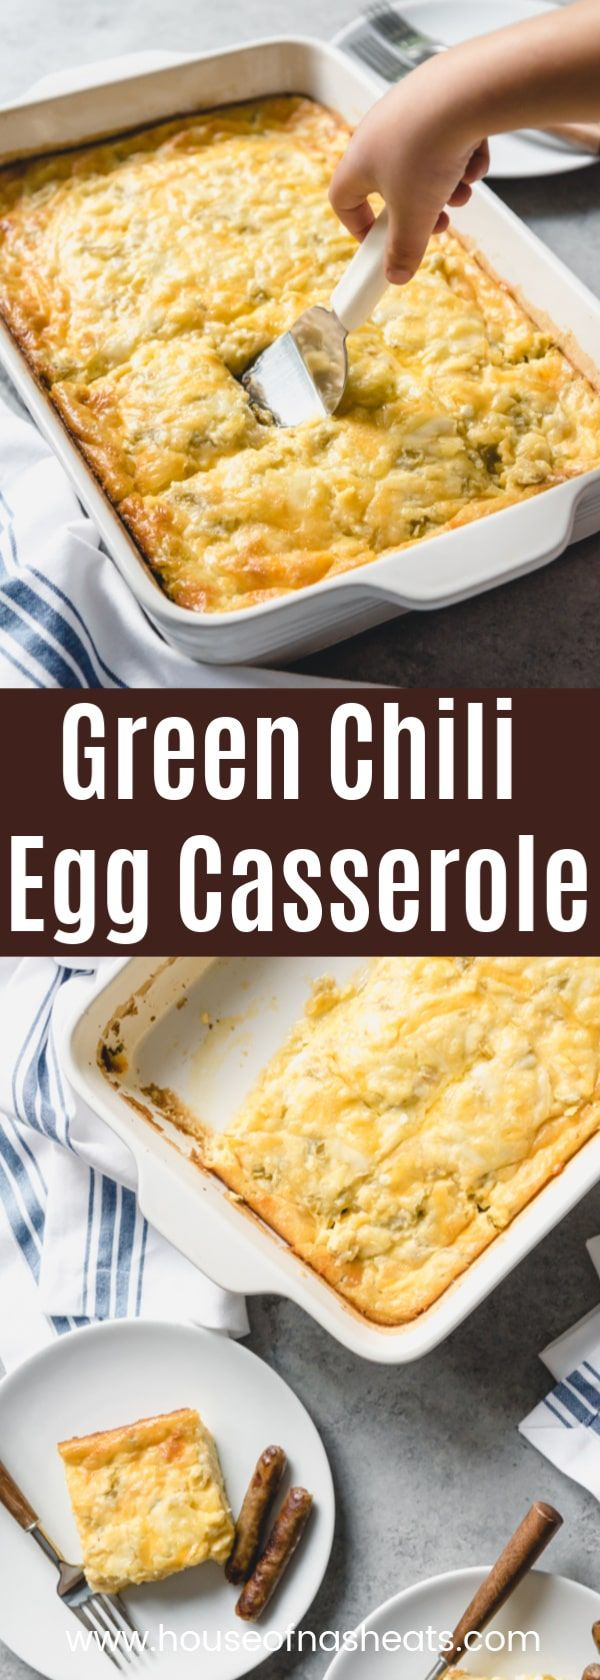 Green Chili Egg Casserole is an easy overnight breakfast casserole that is perfect for Christmas morning or any brunch occasion all year long